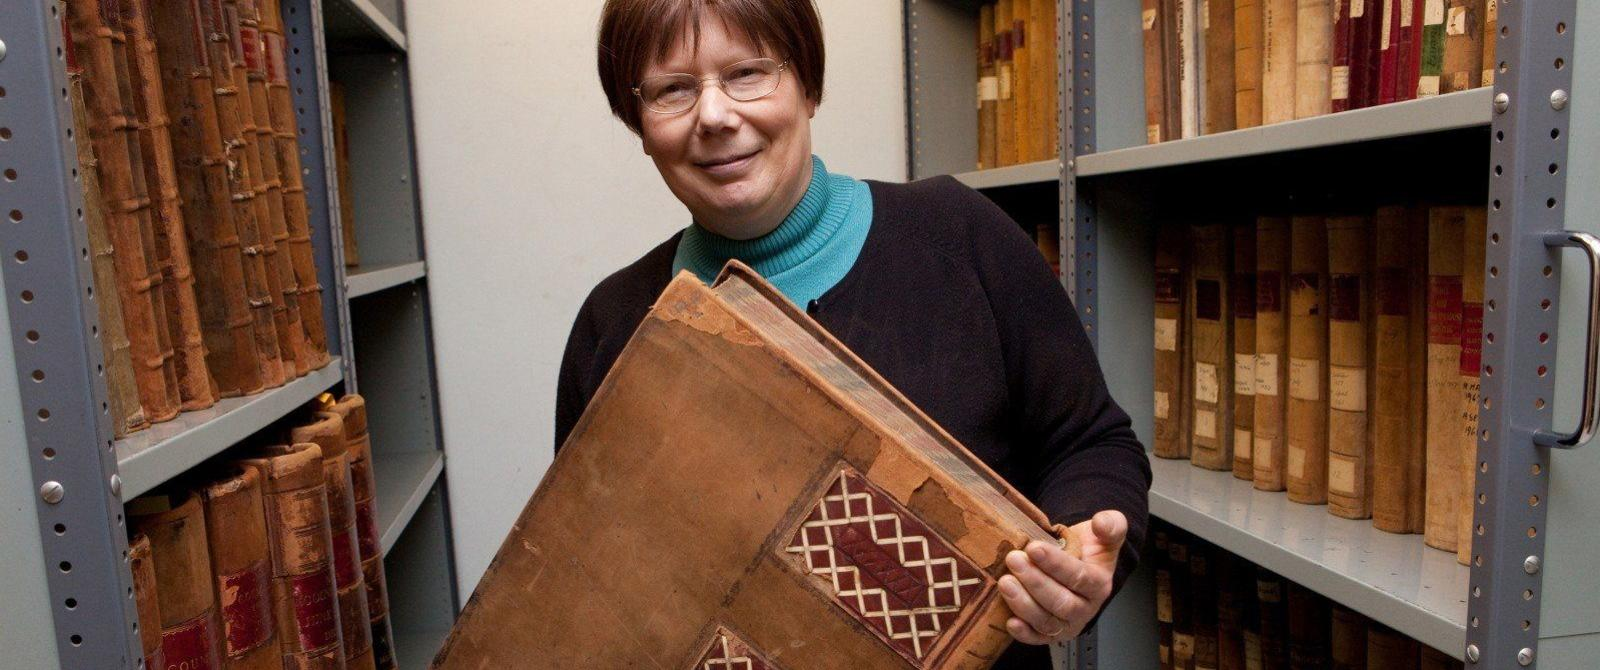 Photograph of an archivist in a strongroom, holding a large volume